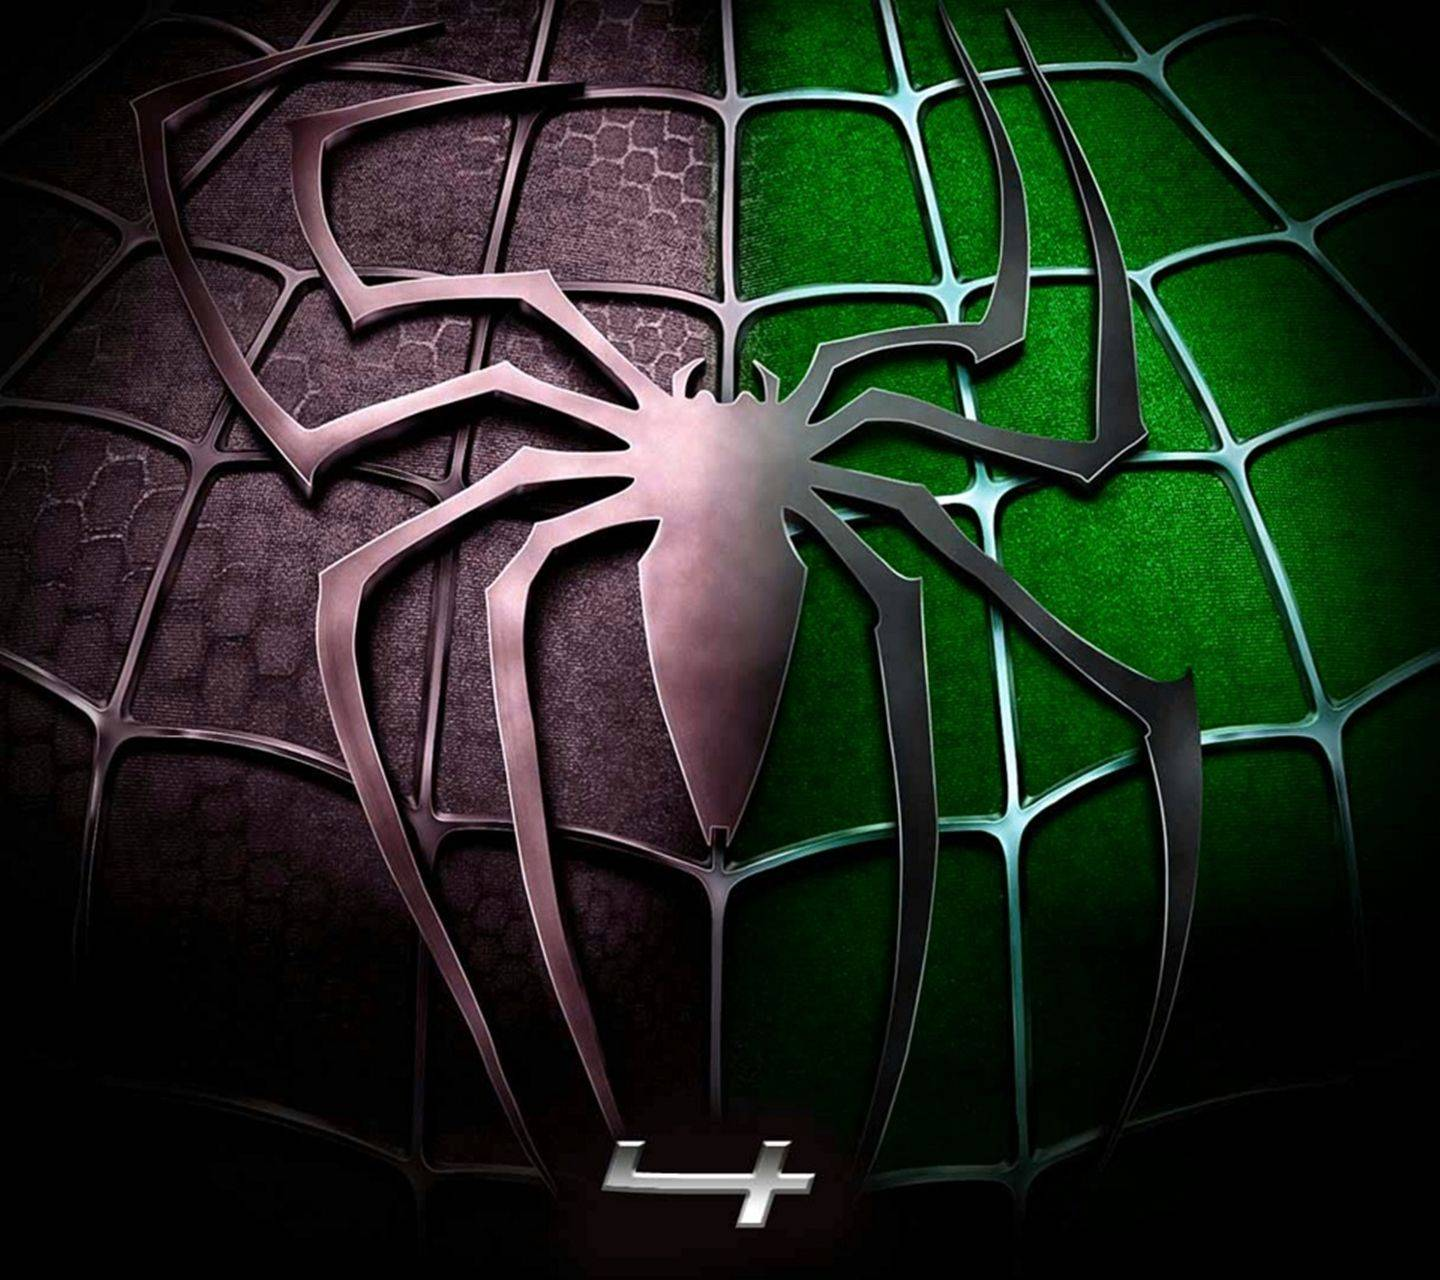 Download free spider man hd wallpapers for your mobile phone by spiderman 4 hd voltagebd Gallery